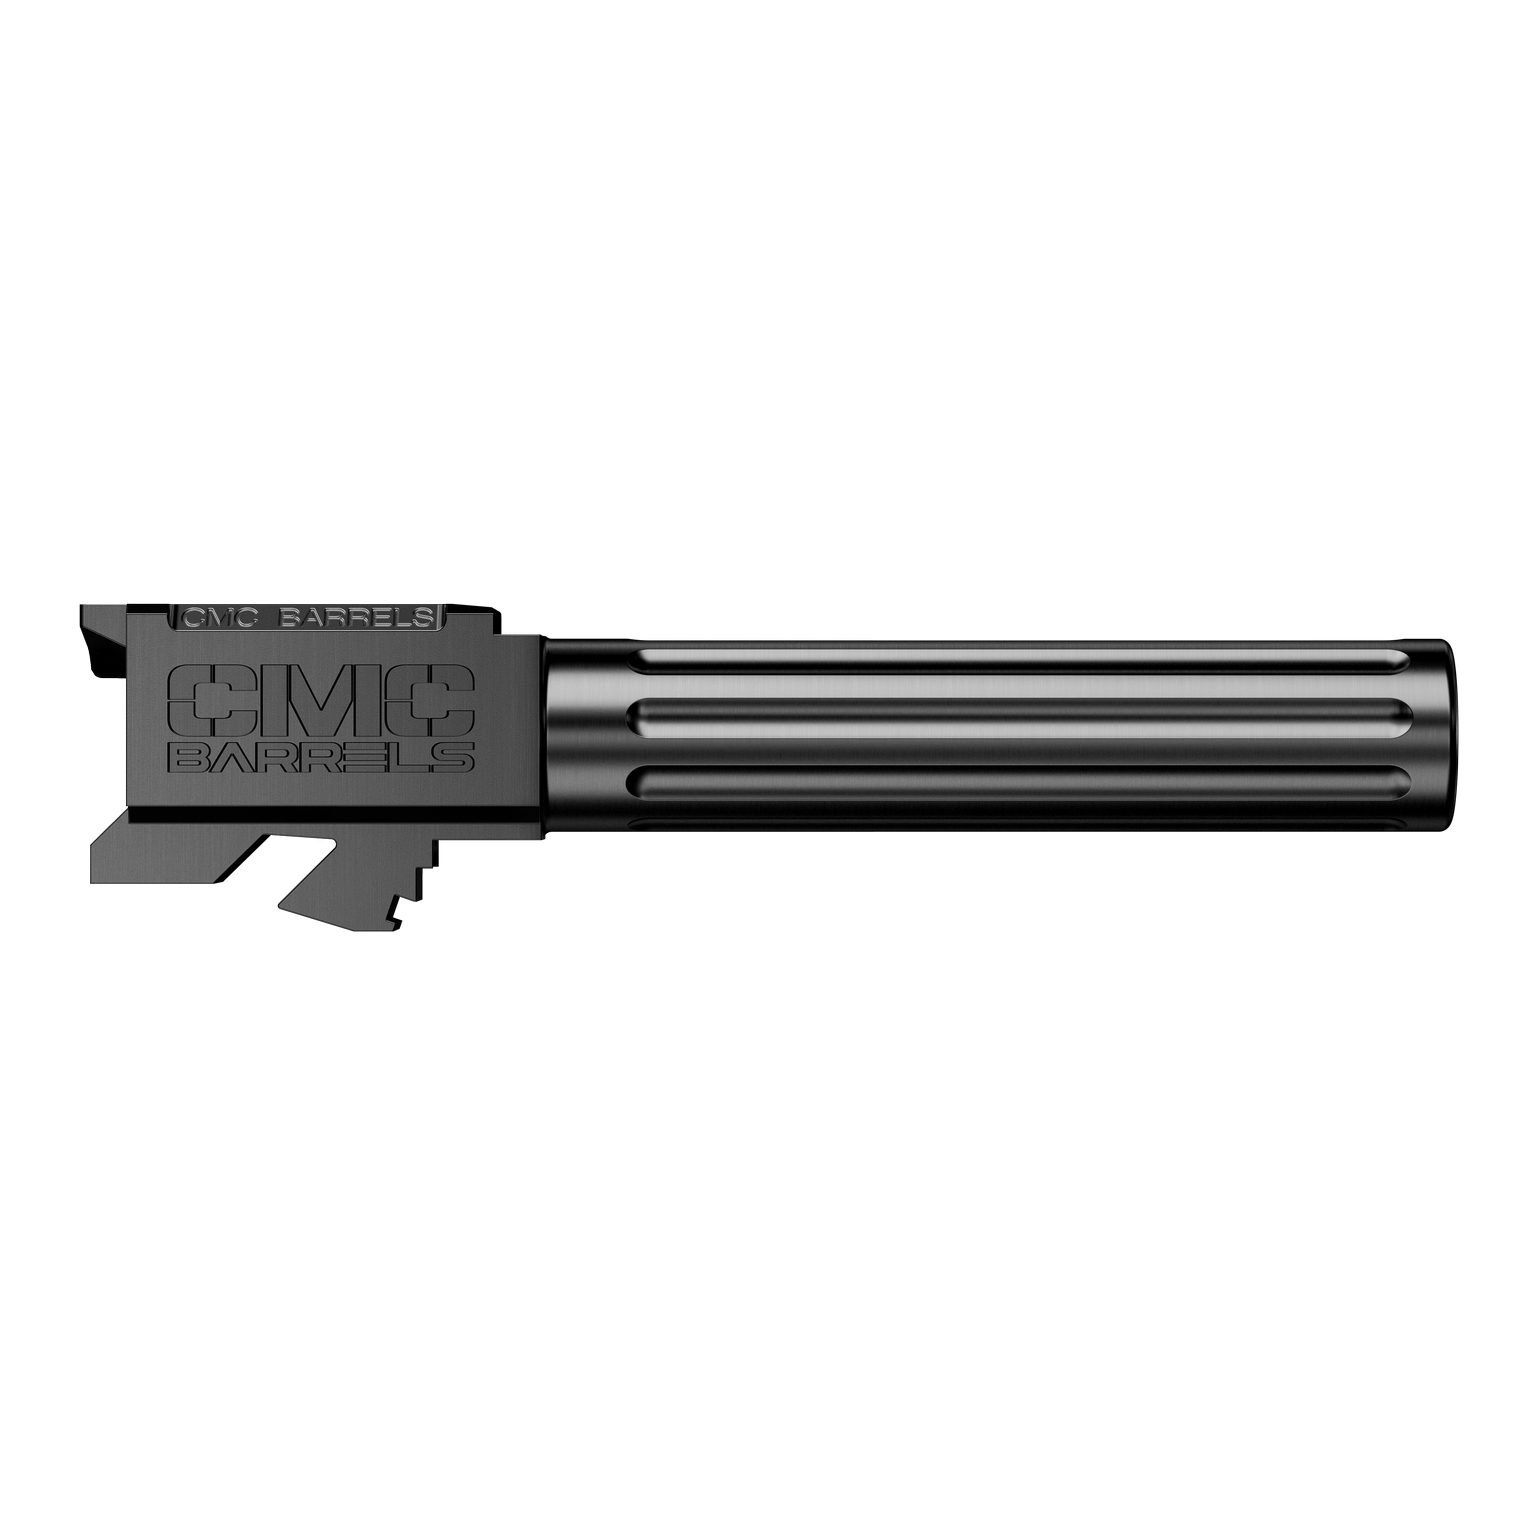 CMC Glock 19 Fluted Barrel Non Threaded